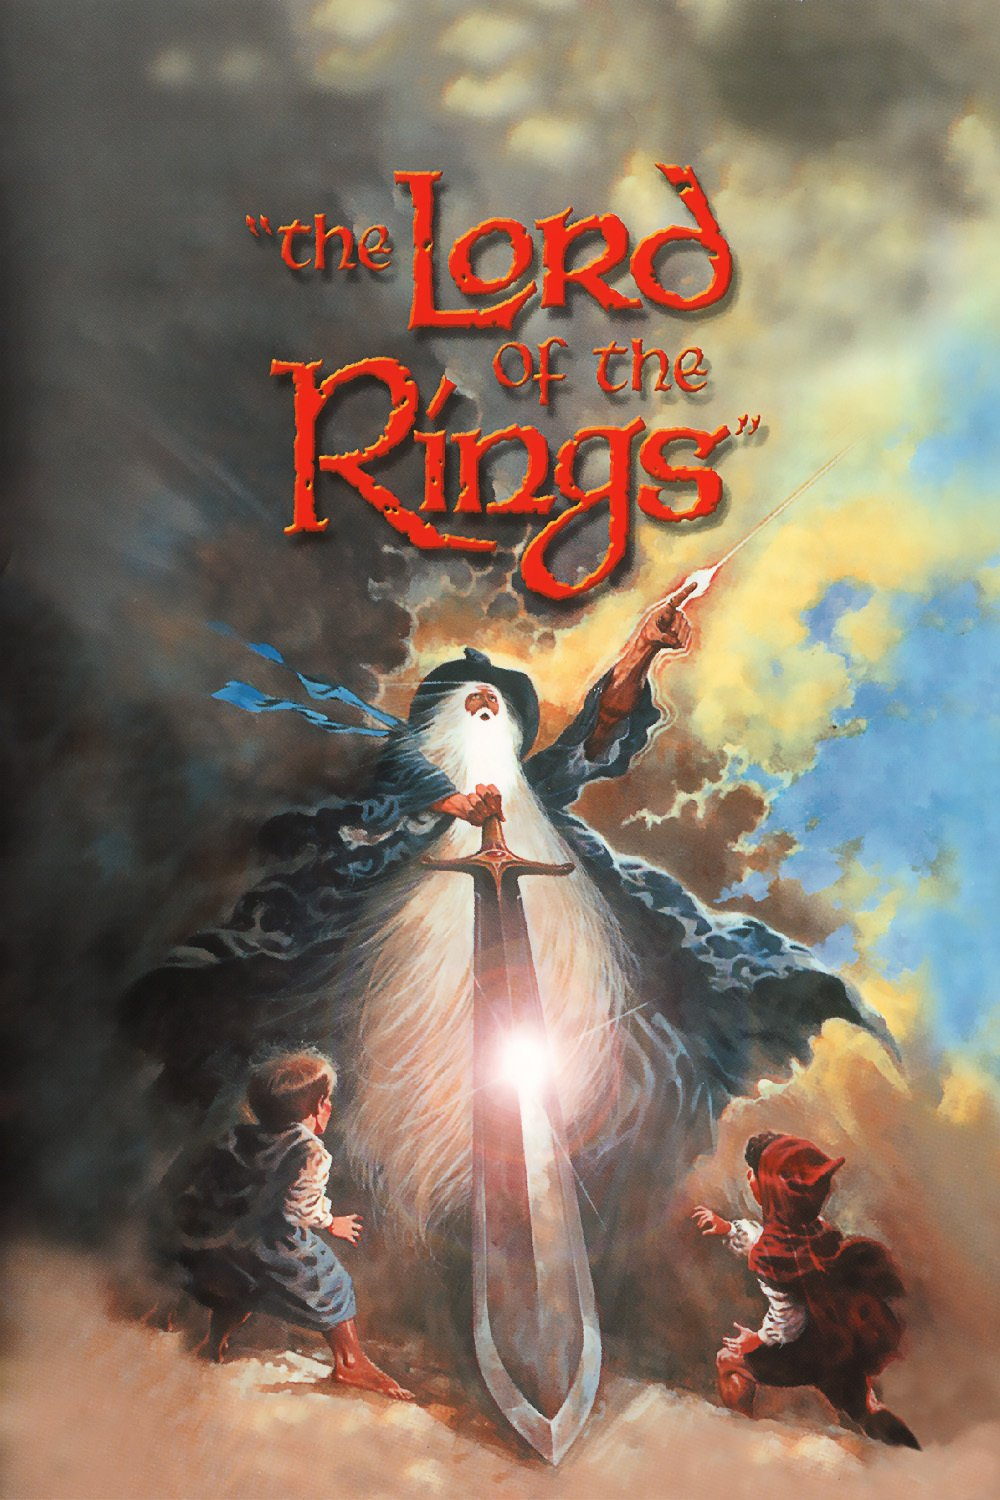 Amazon.com: The Lord of the Rings Animated Dvd 1978 Widescreen: Movies & TV